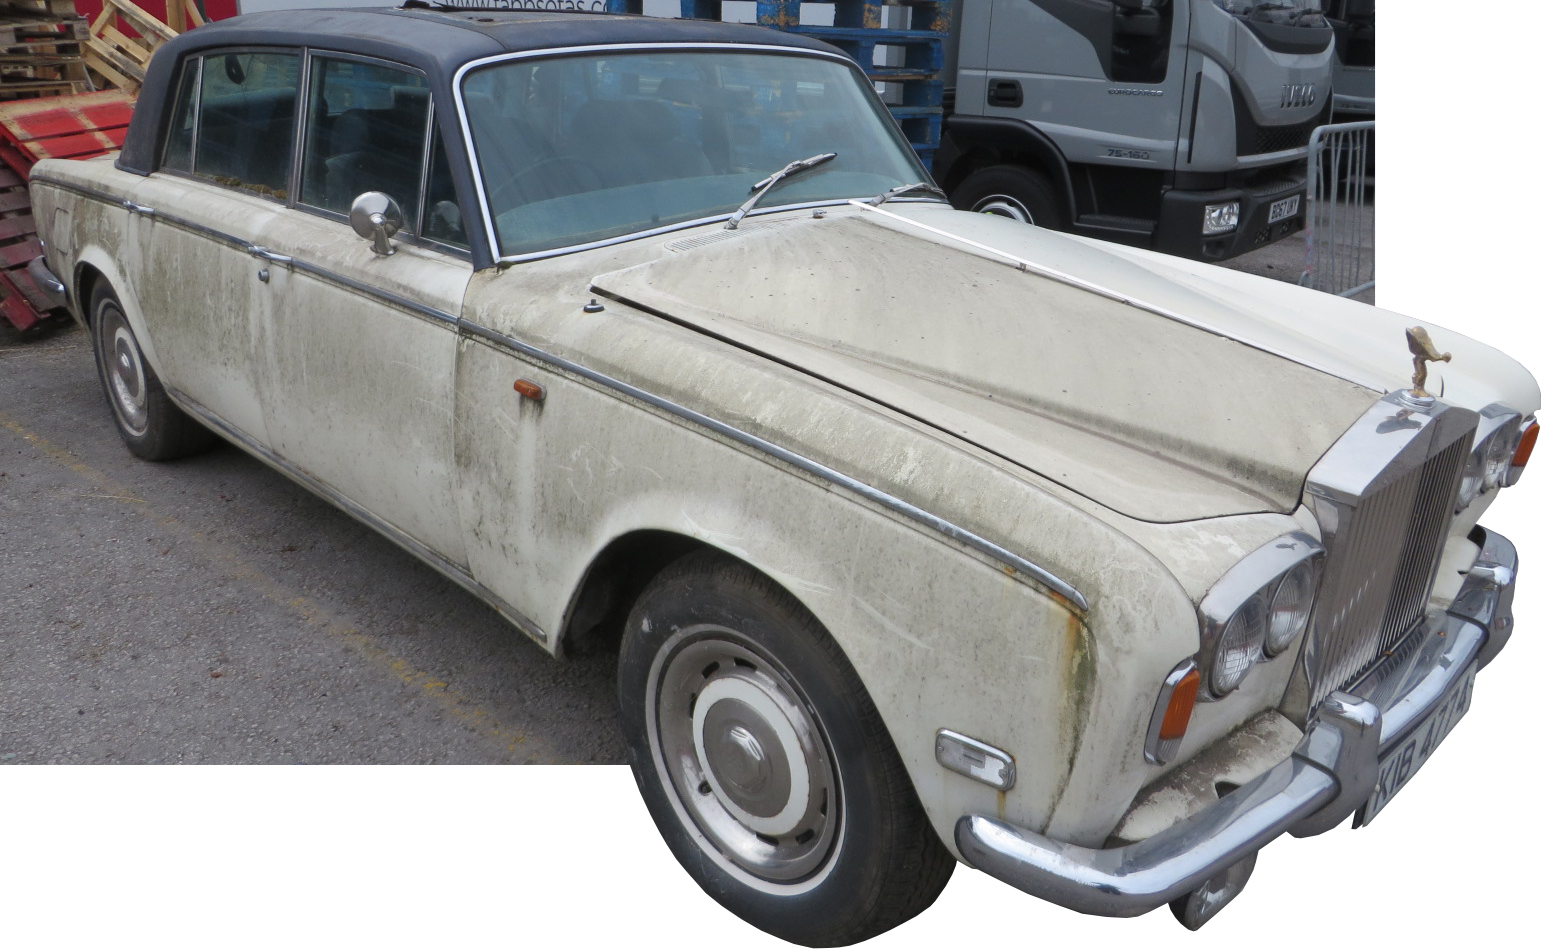 1975 Rolls Royce Silver Shadow - Main Image